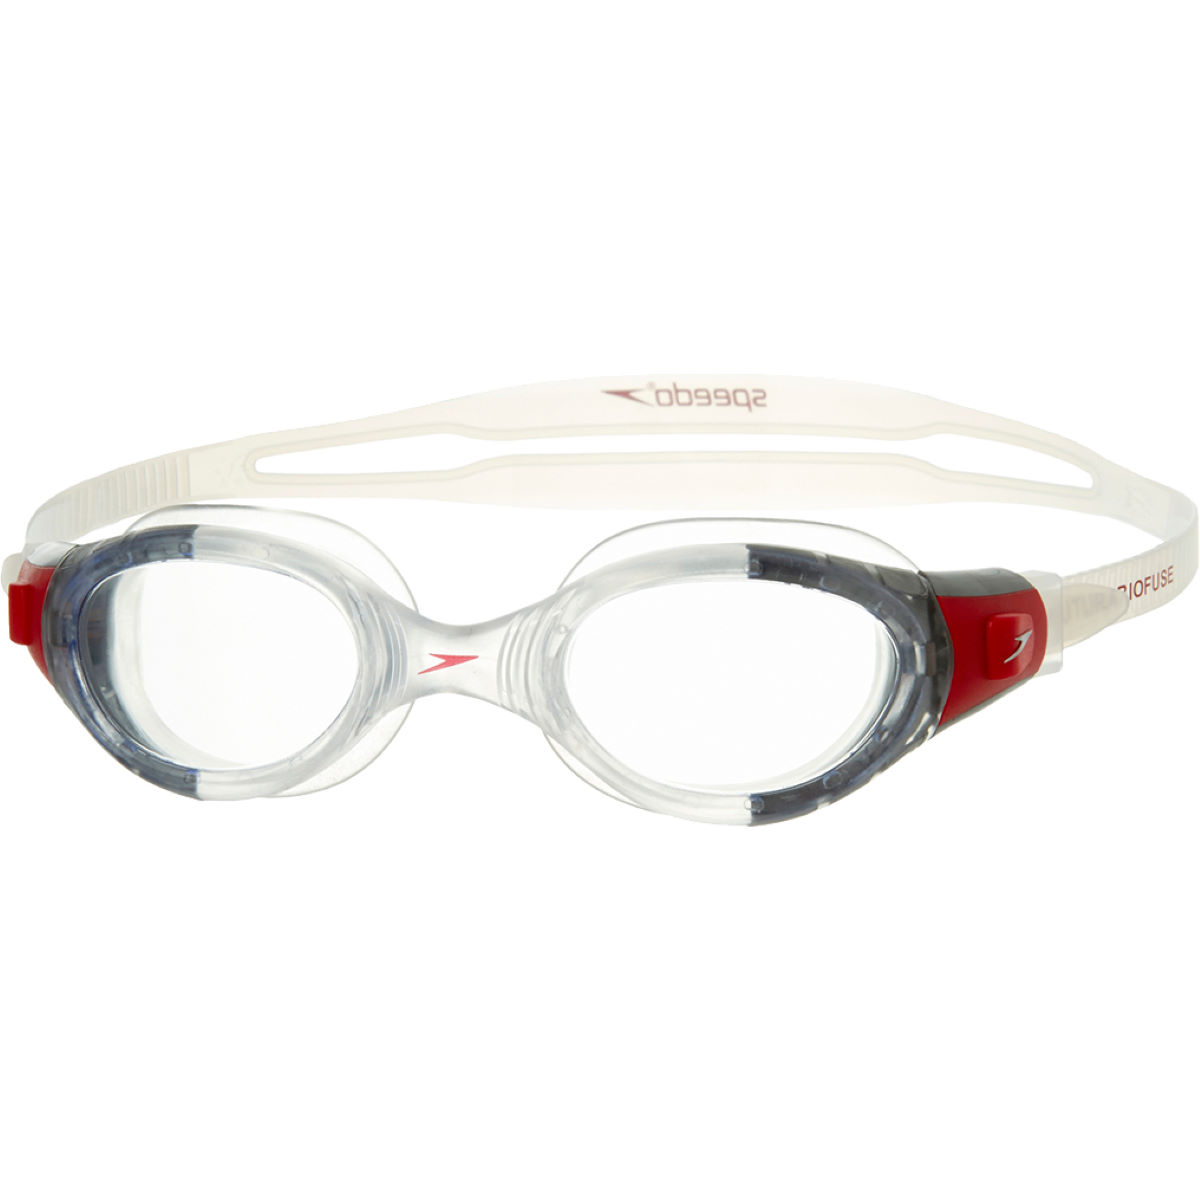 Speedo Futura Biofuse Swimming Goggles